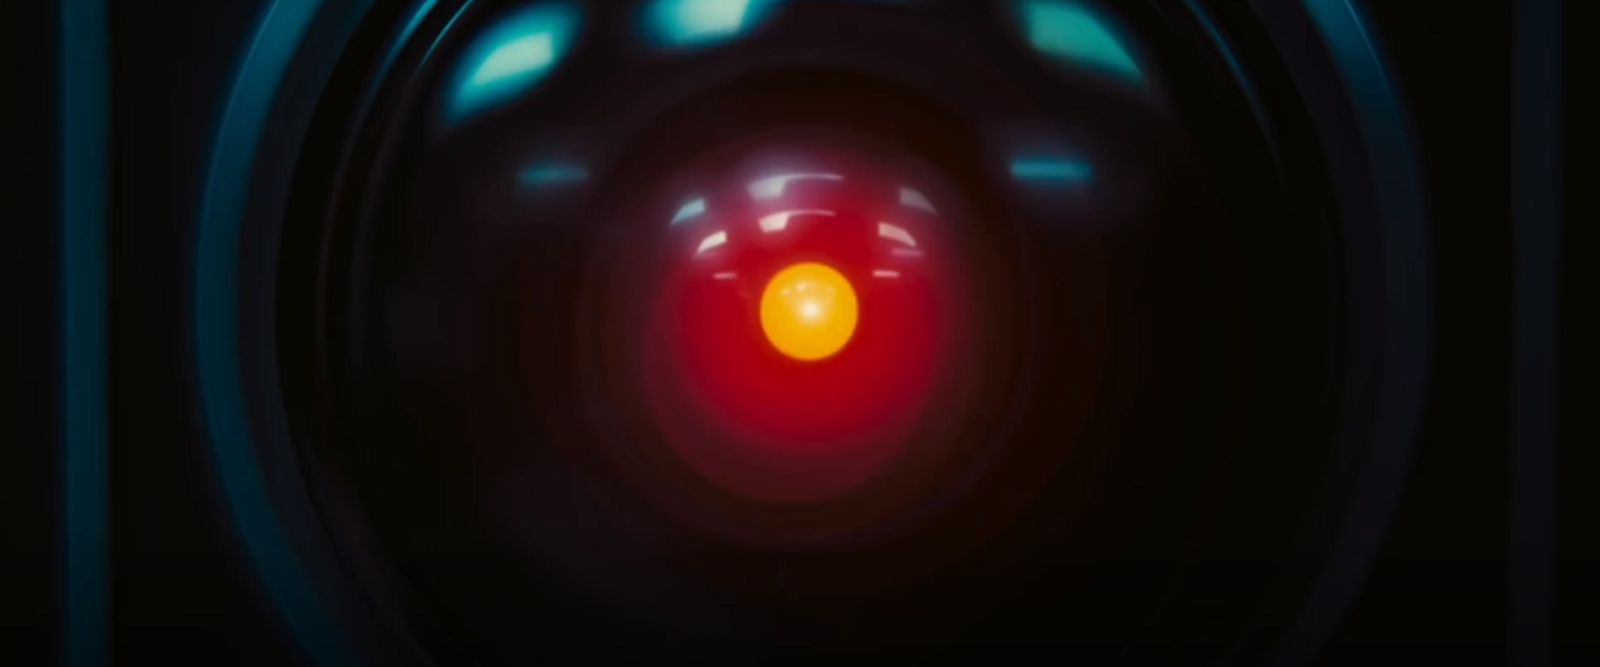 Closeup of the HAL-9000 camera lens with glowing red center